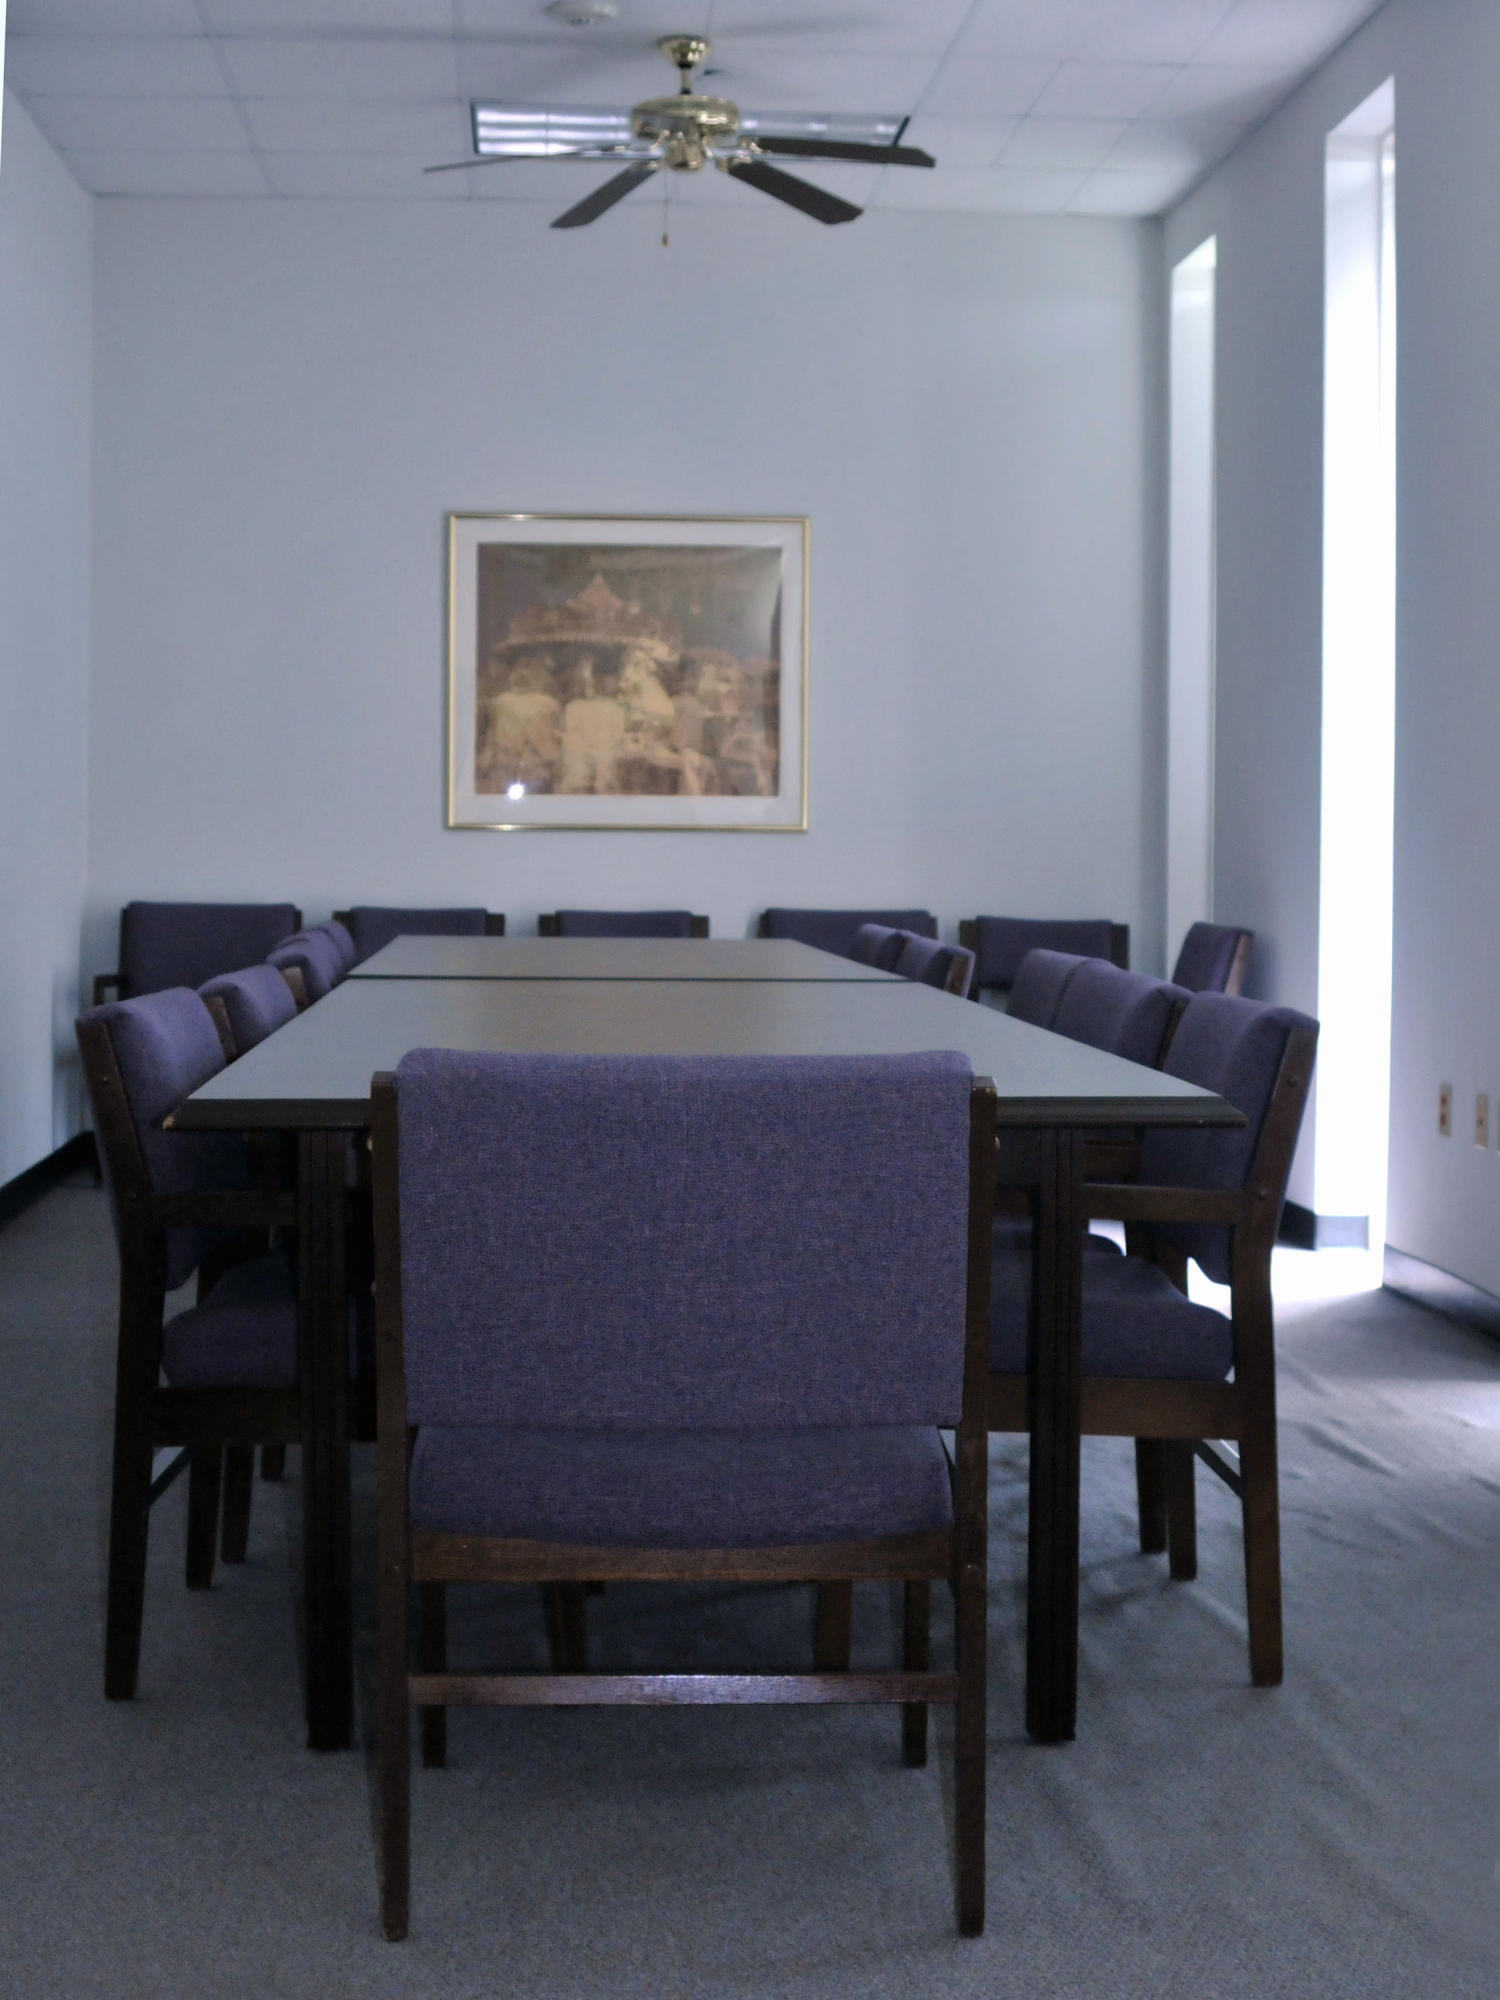 [Conference Room at Library Annex]                                                                                                      [Sequence #]: 1 of 1